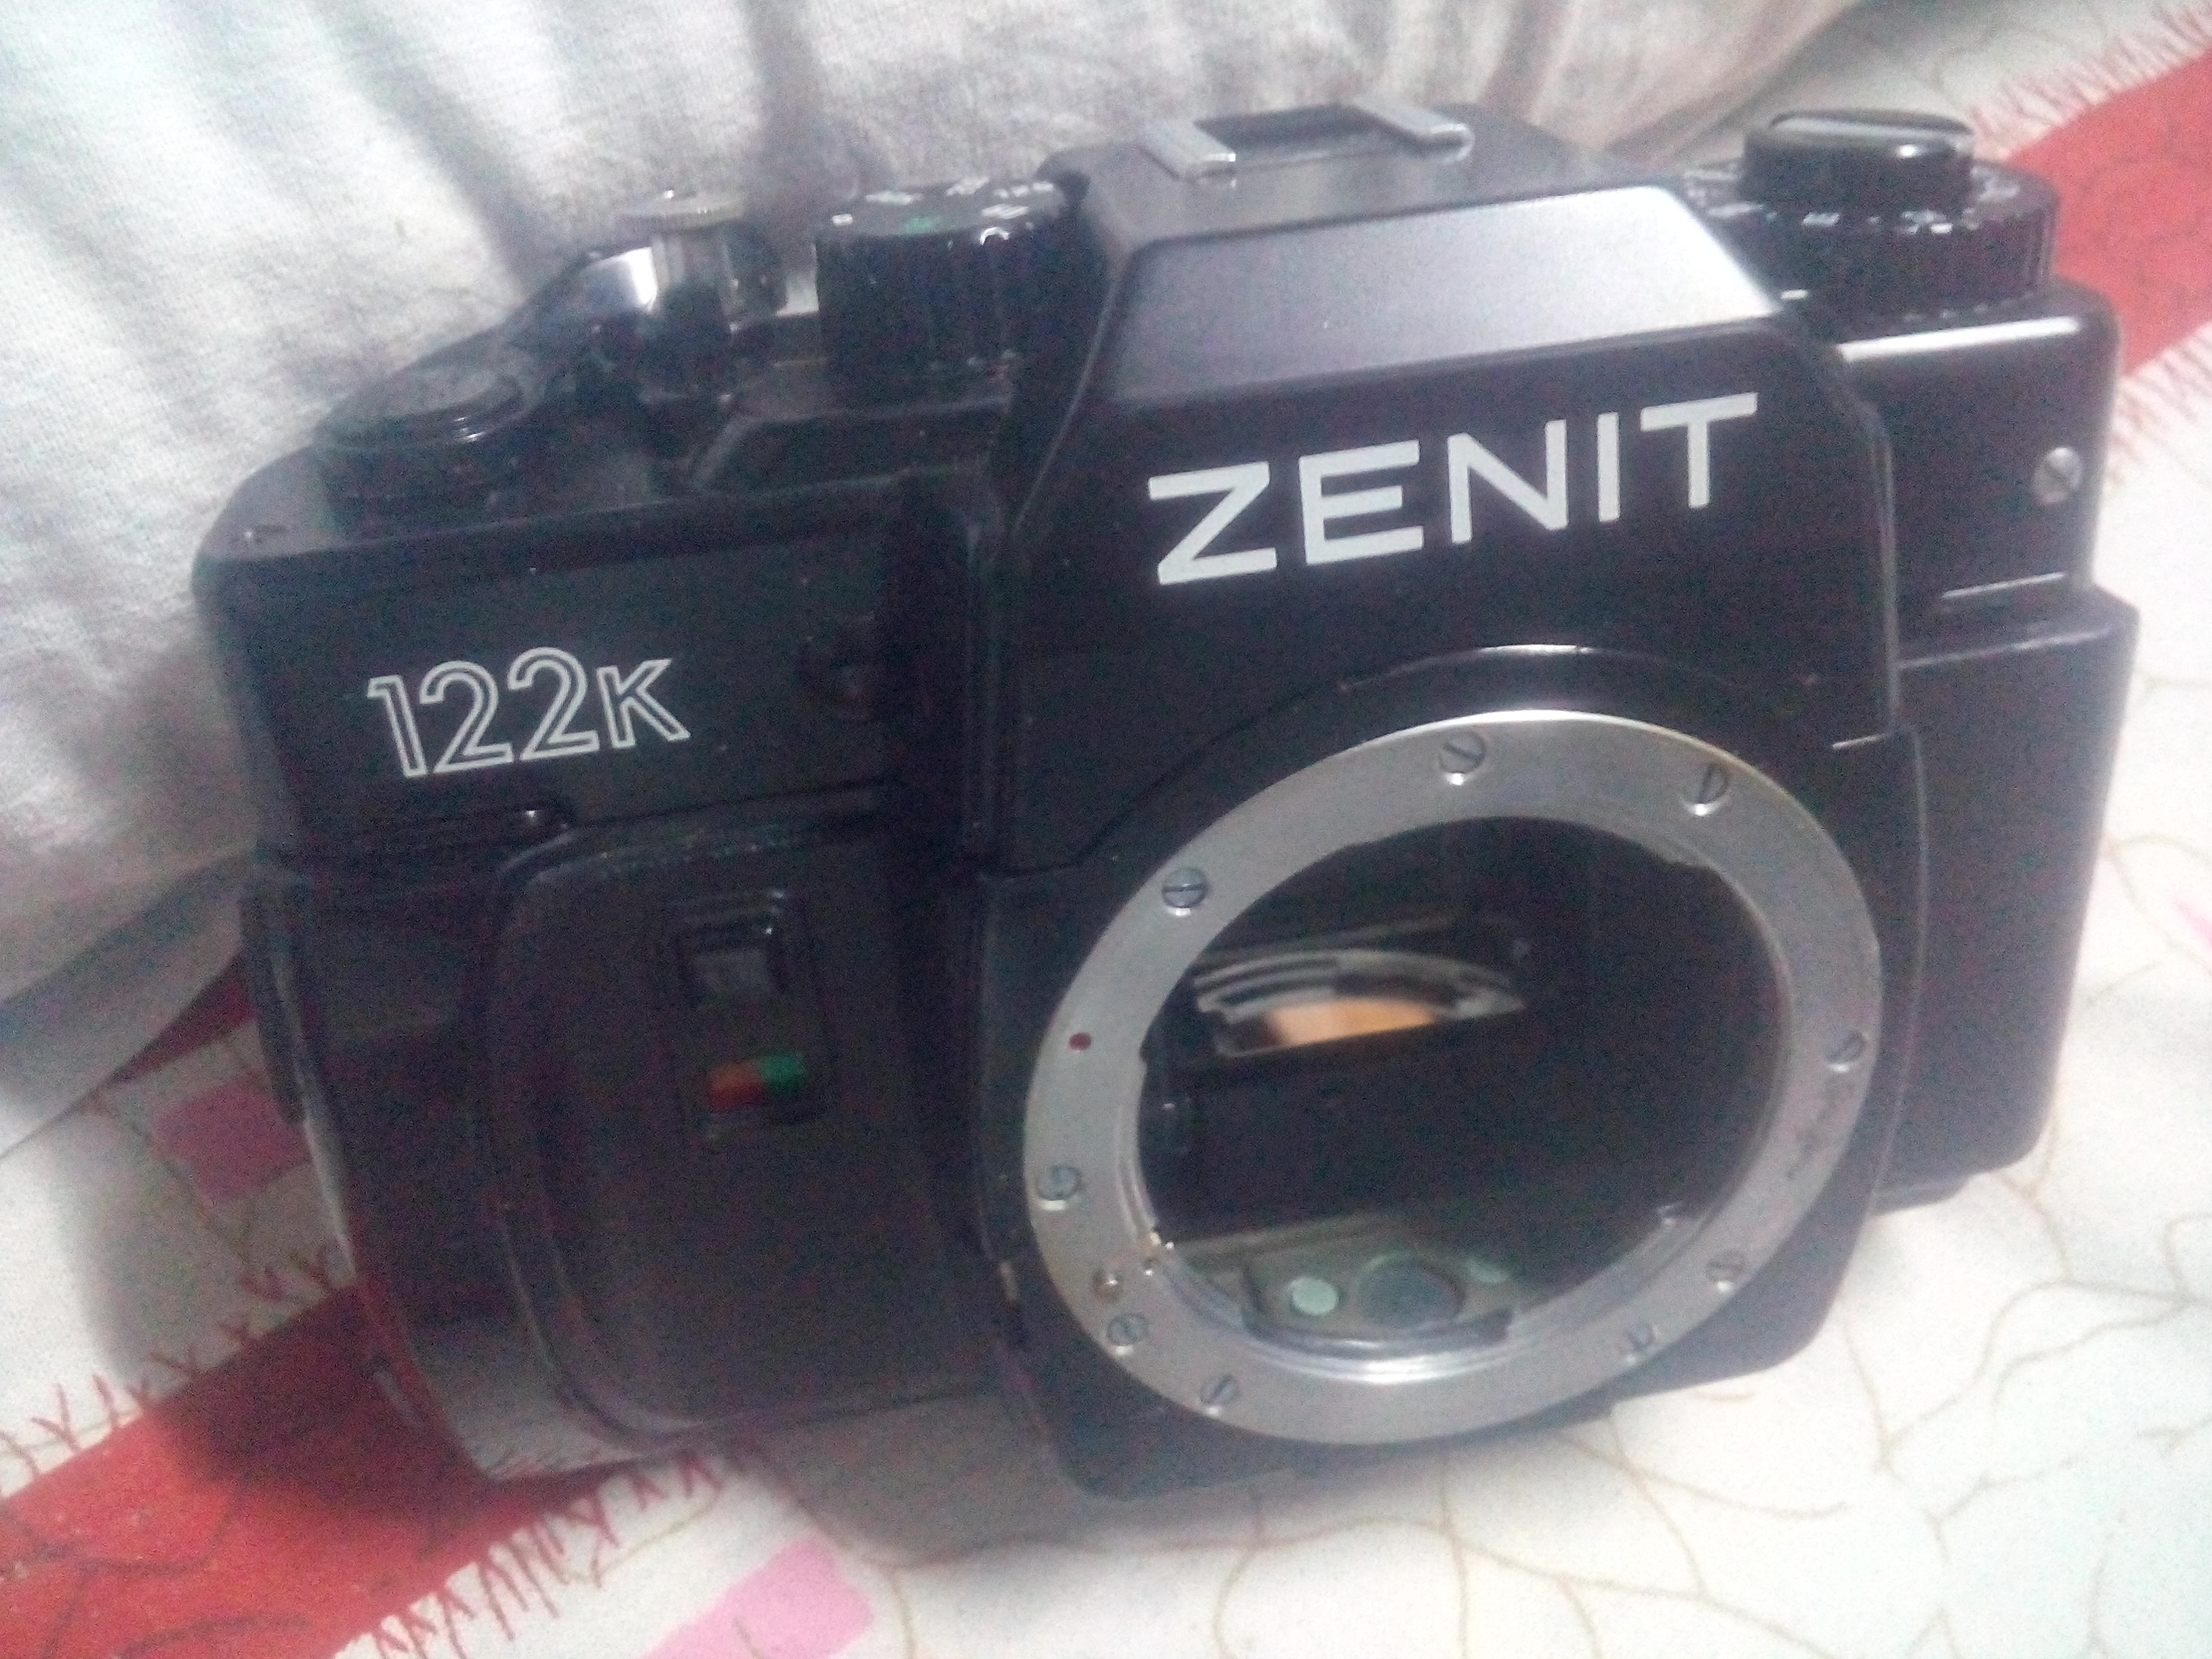 File:Image of Russian-made Zennit without lens kit jpg